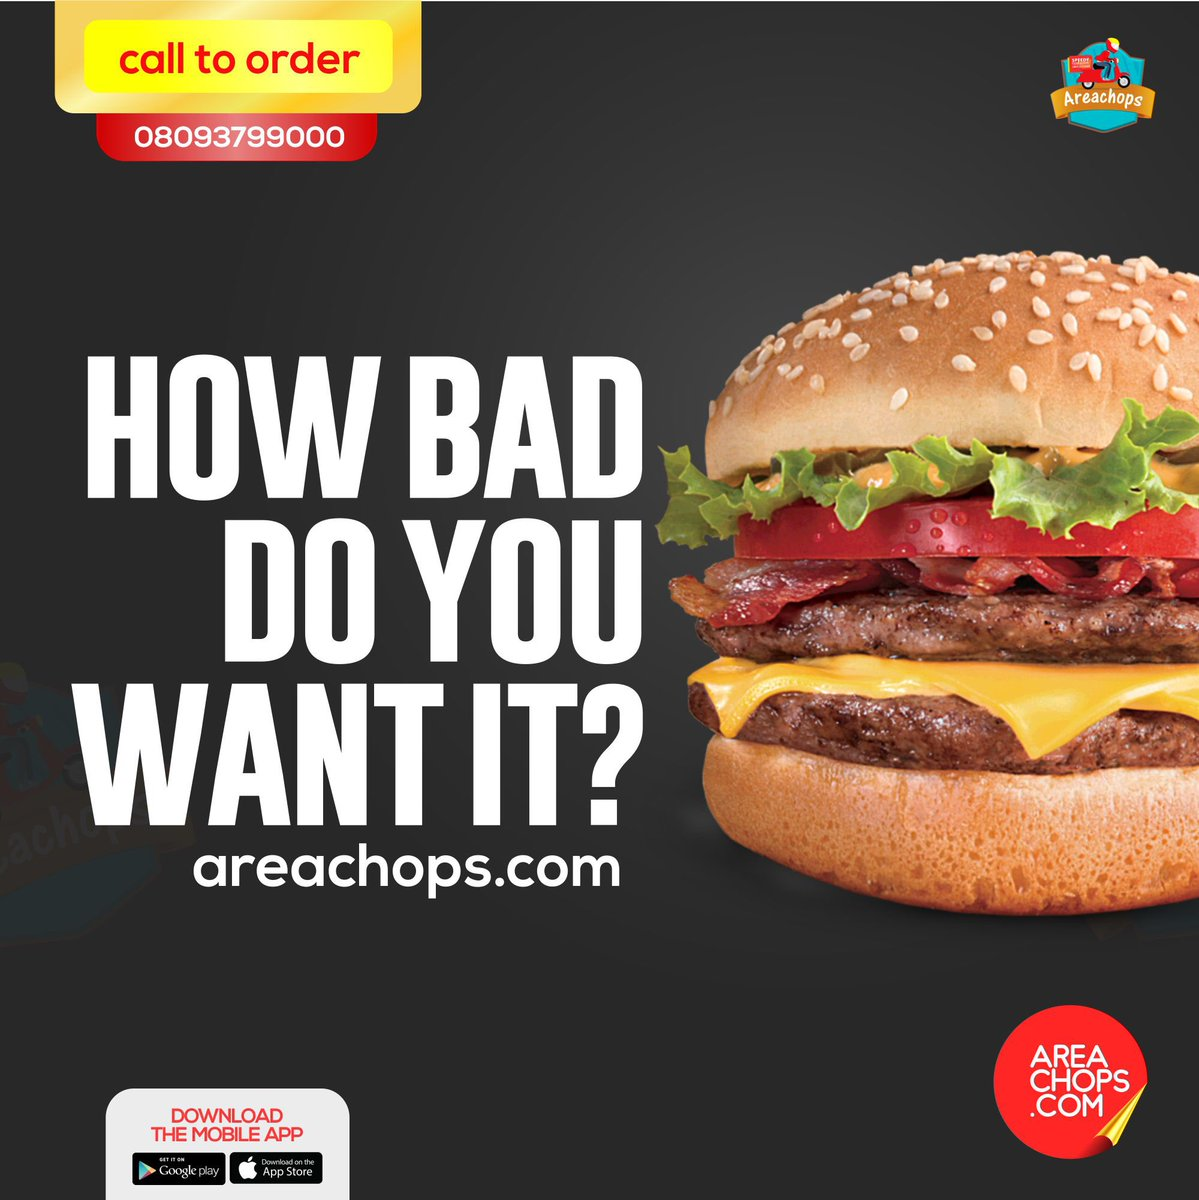 http://www. areachops.com  &nbsp;   or call us +234 809 379 9000 if you want this ...  #areachops #restaurants #burgers #fries #order #online #lagos<br>http://pic.twitter.com/Tlr5Xy0K8j